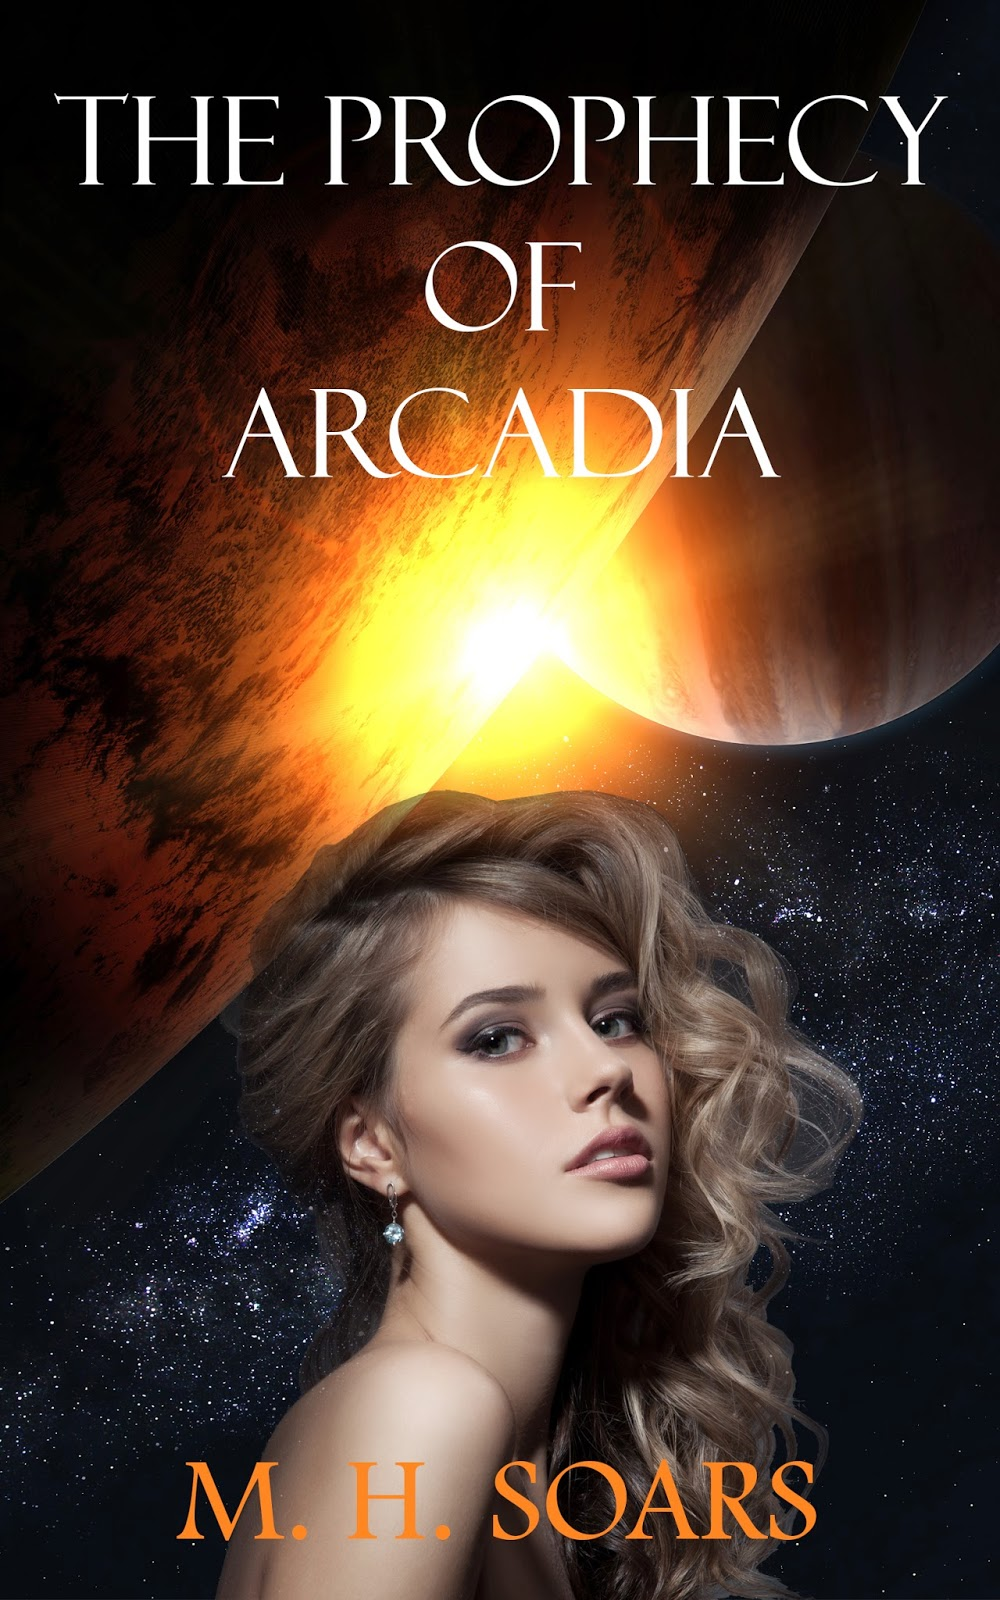 http://clevergirlsread.blogspot.com/2014/05/blog-tour-review-giveaway-prophecy-of.html